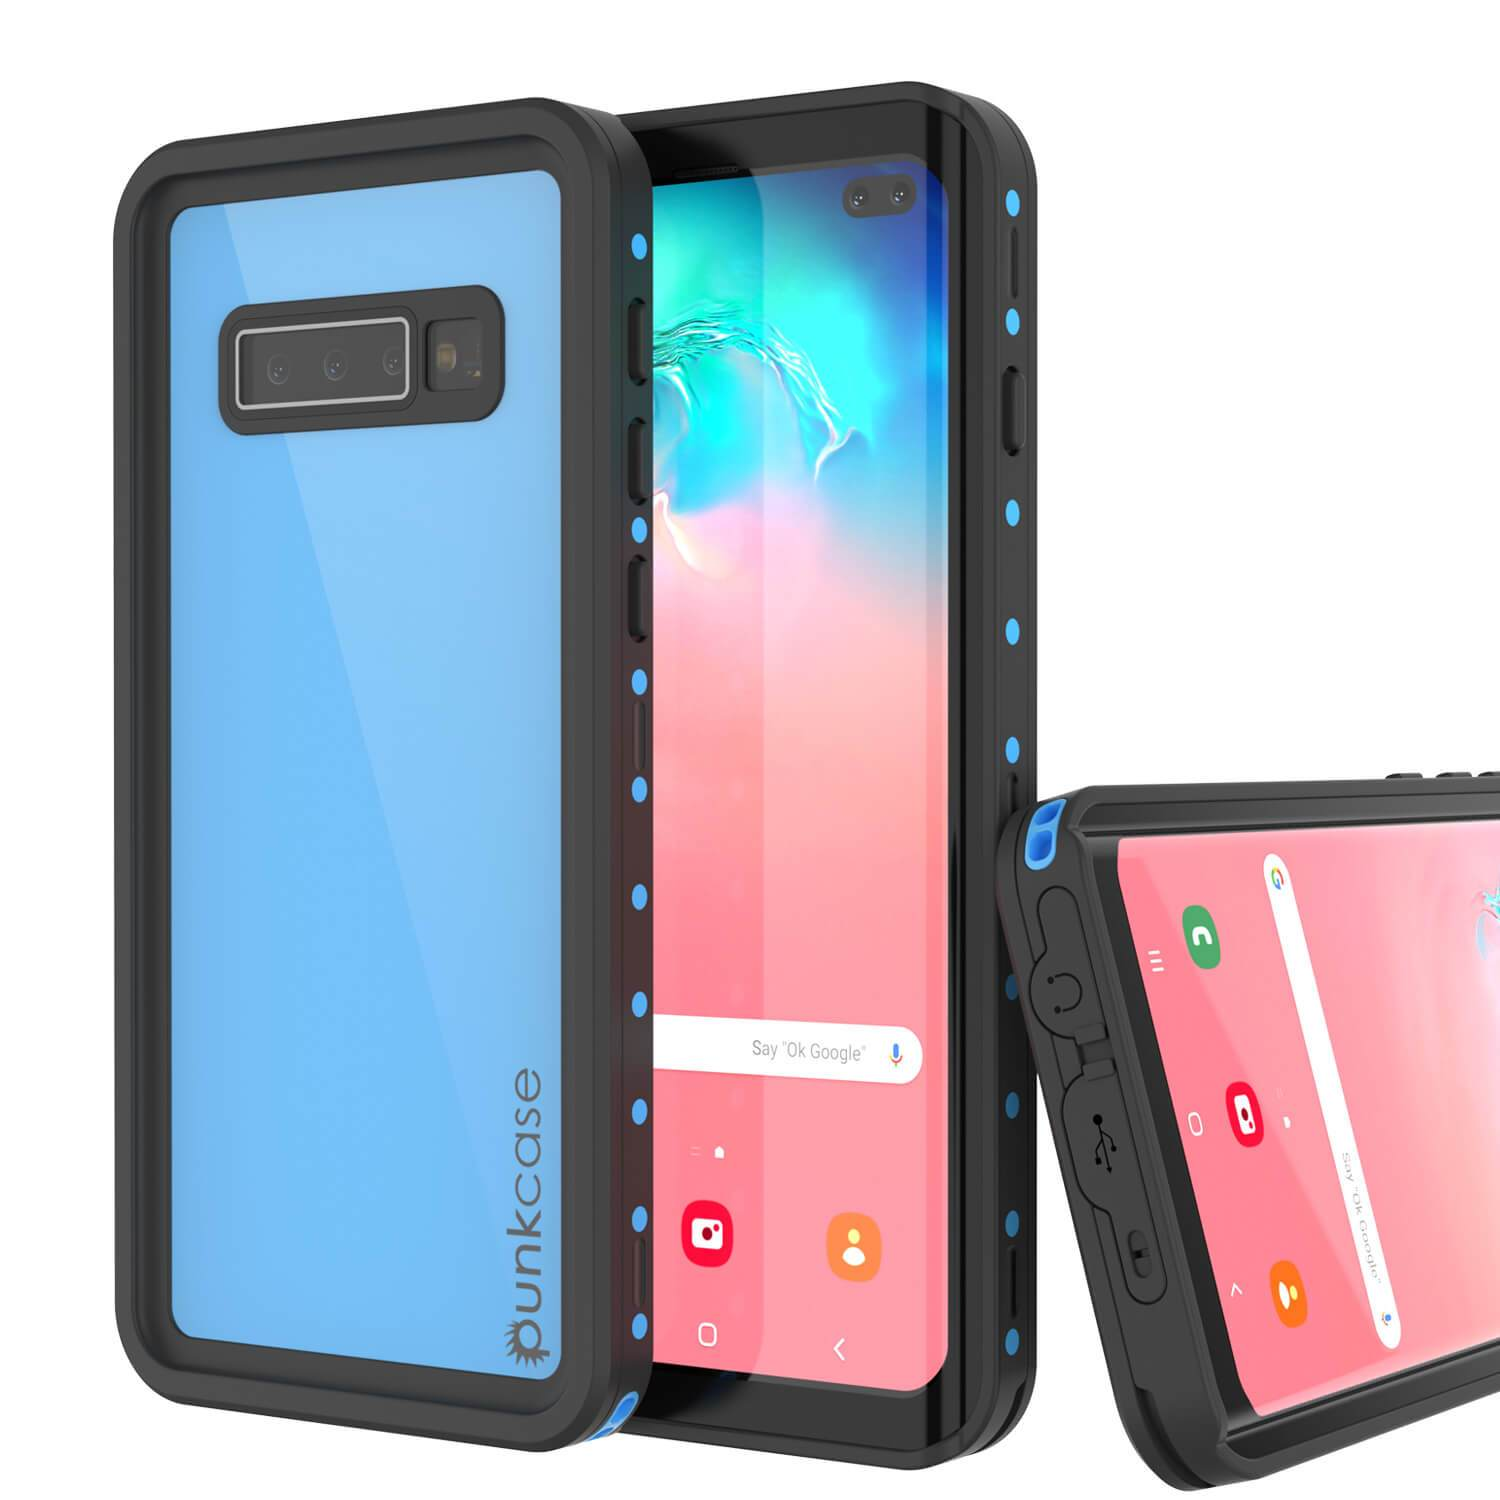 Galaxy S10+ Plus Waterproof Case PunkCase StudStar Light Blue Thin 6.6ft Underwater IP68 ShockProof